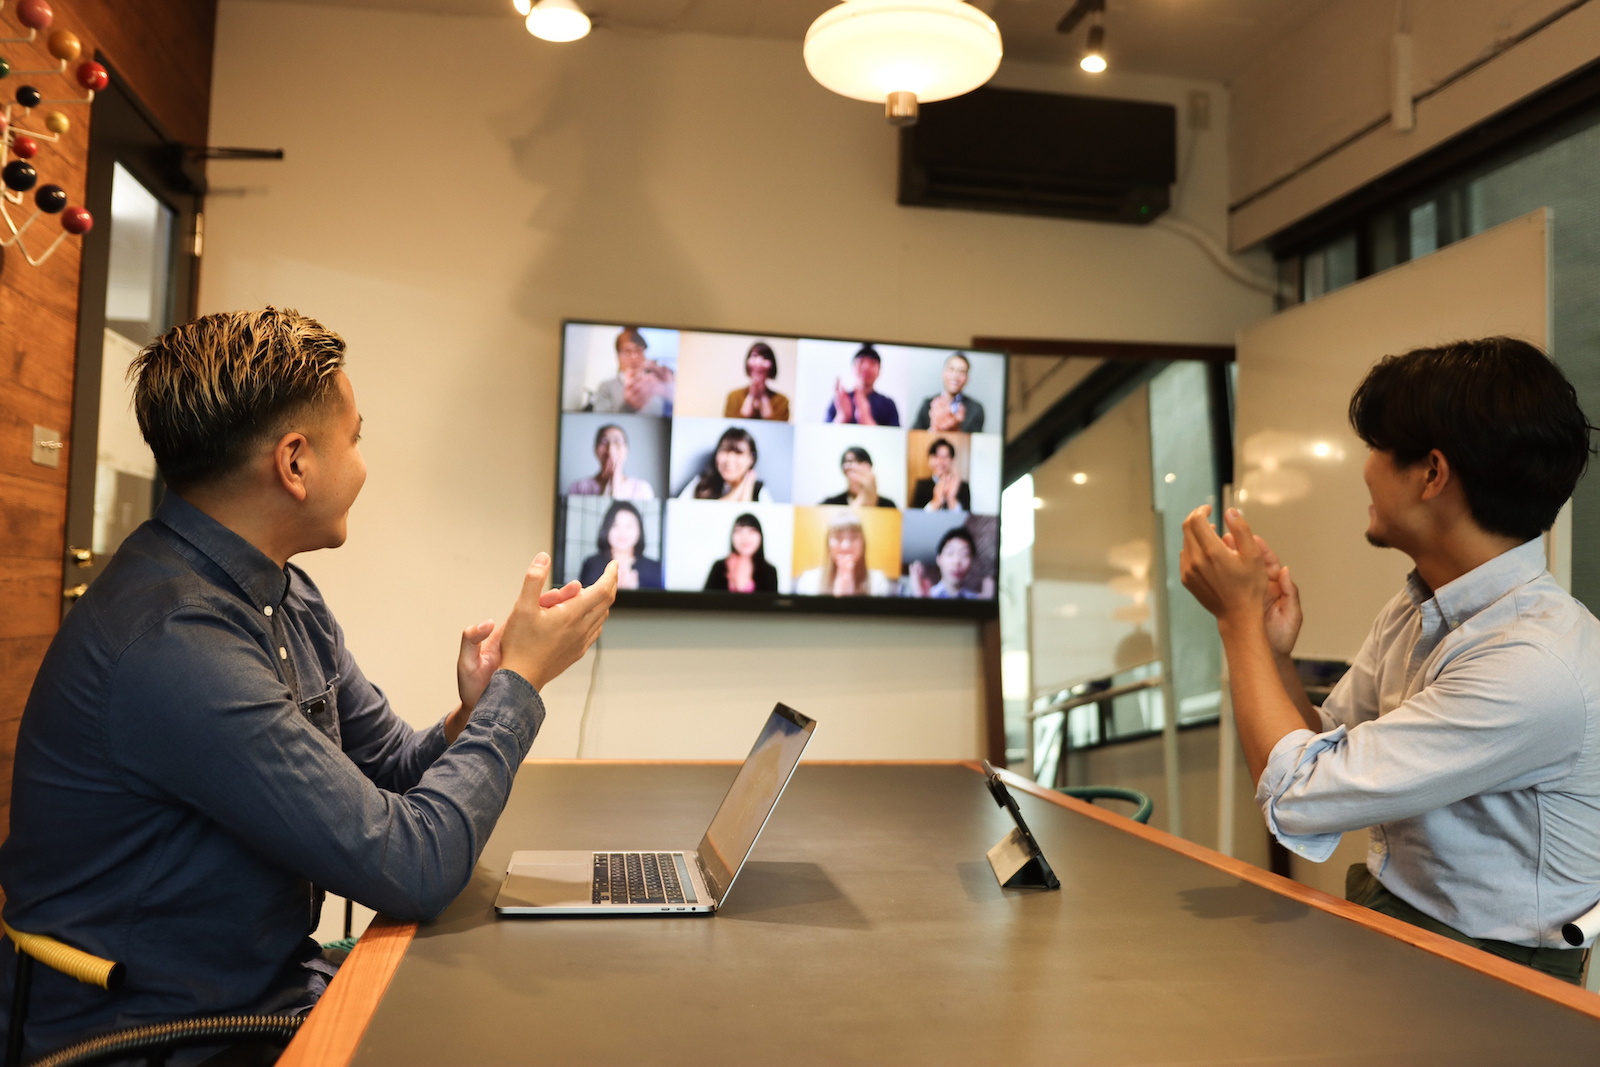 Employees at a conference table interacting with a videoconference